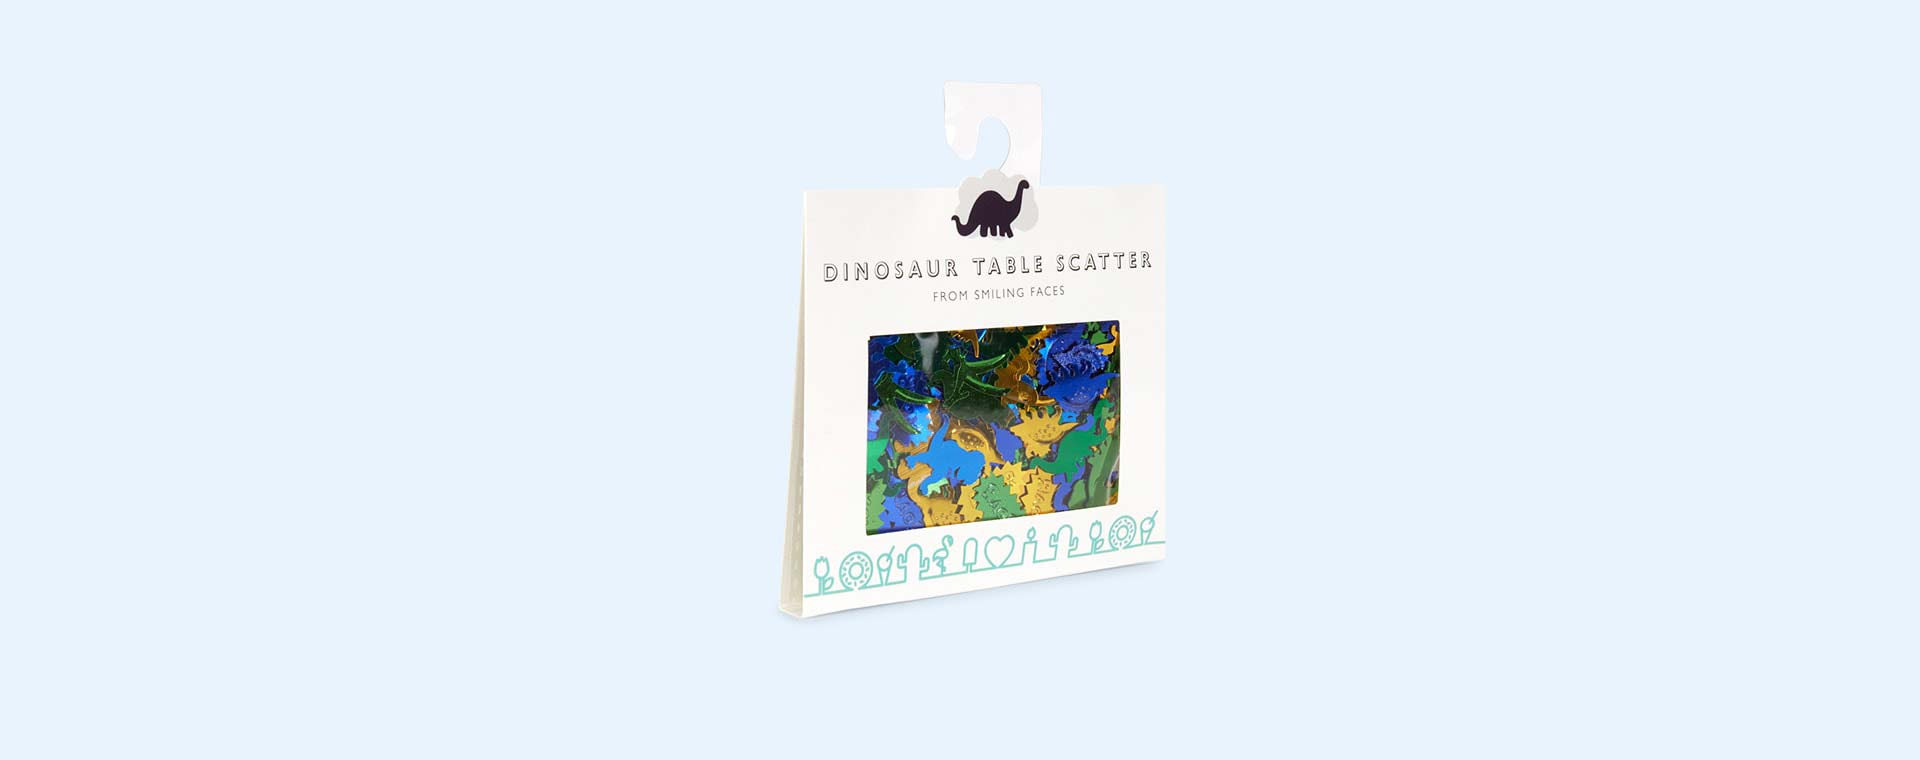 Dinosaur Smiling Faces Dinosaur Table Scatter